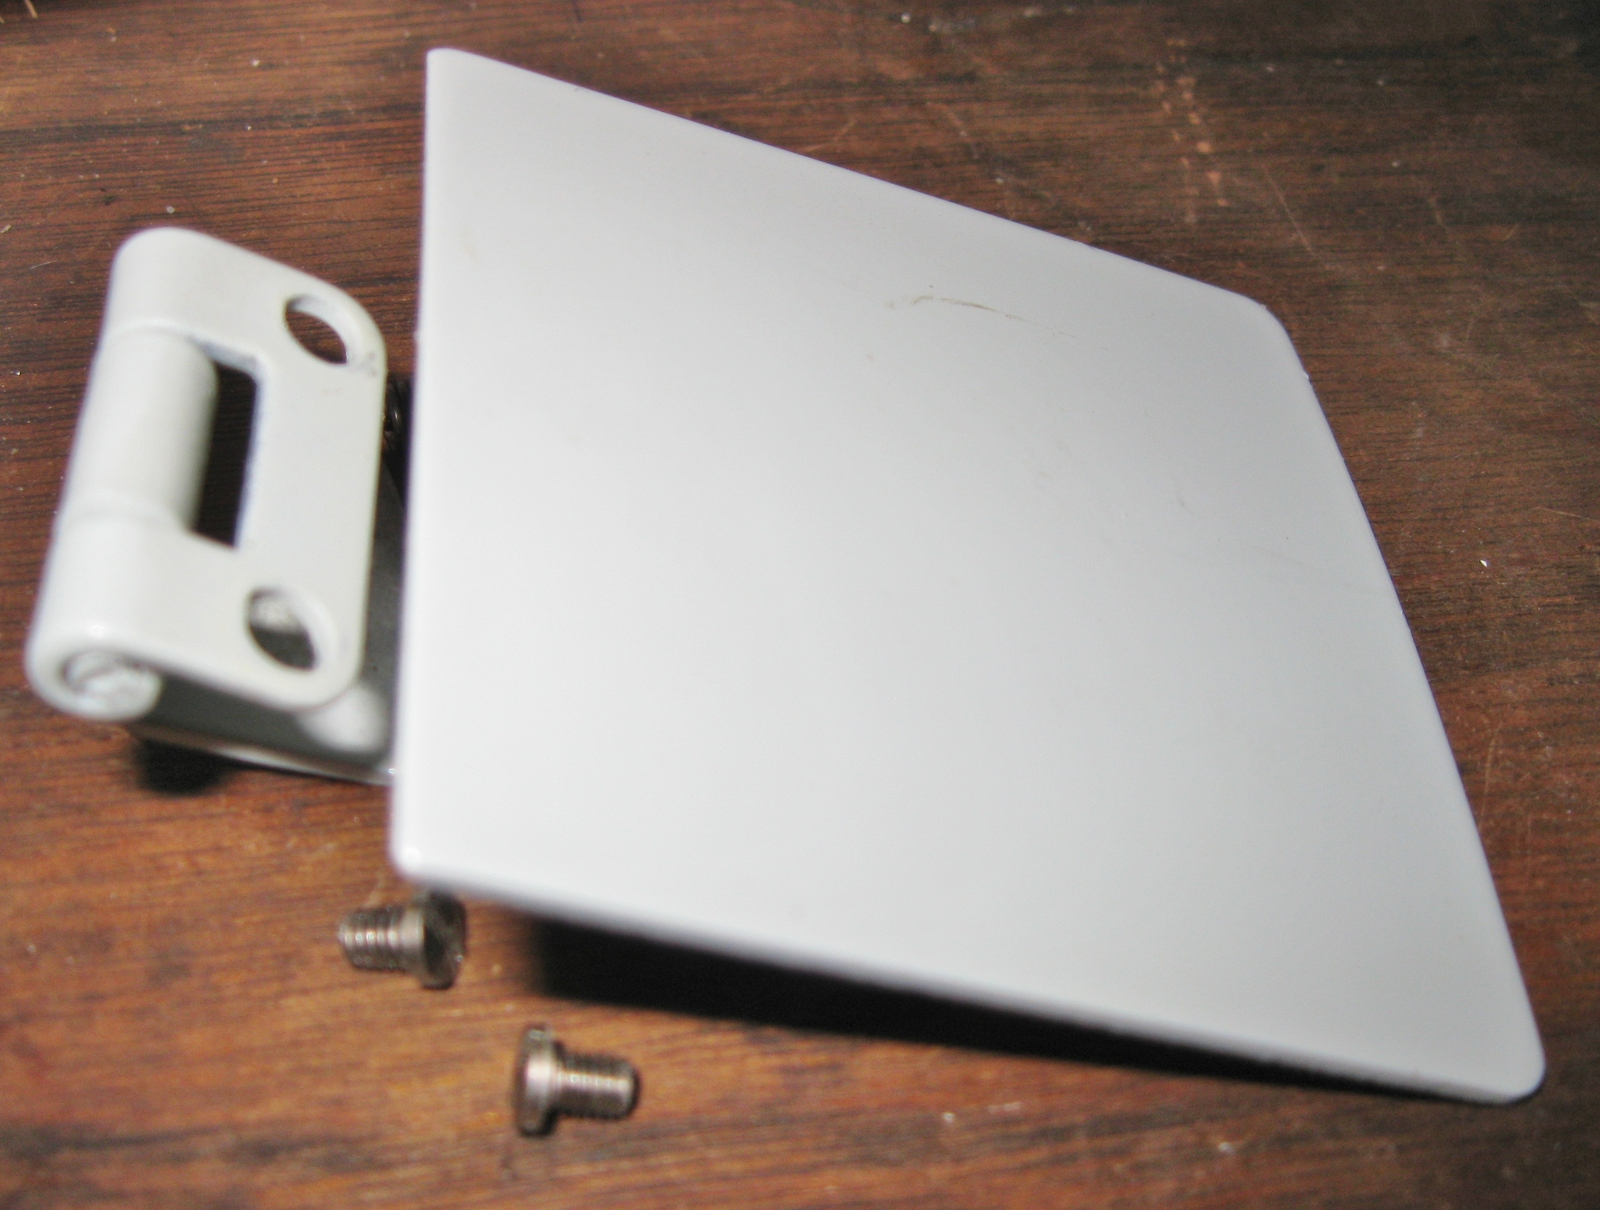 Primary image for Dressmaker Deluxe SWA-2000 Decorative Cam Door Cover w/Screws & Spring